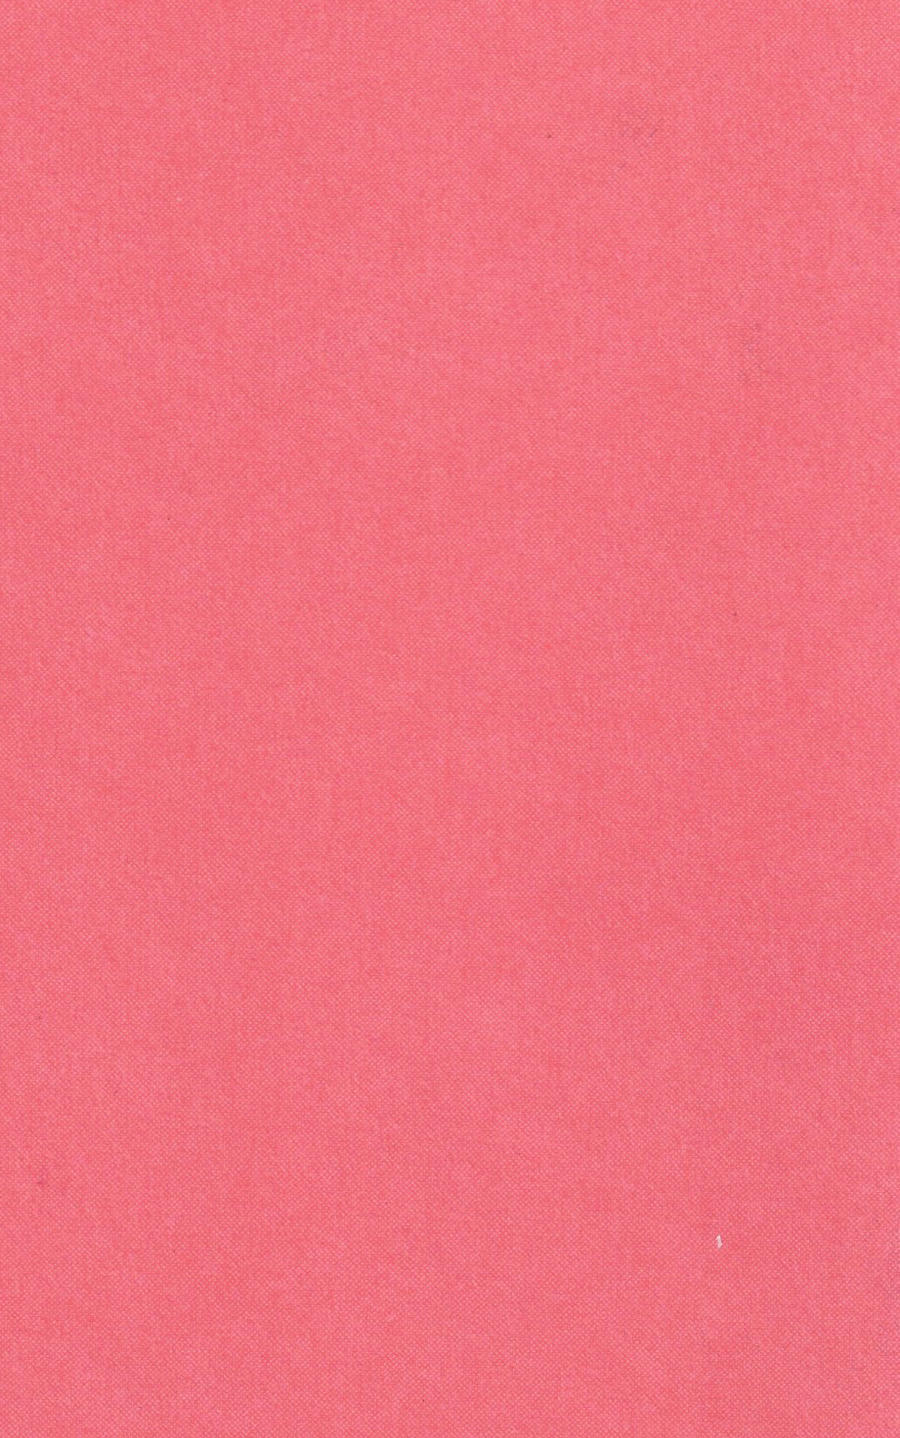 Pink paper 4 by lefifistock on DeviantArt